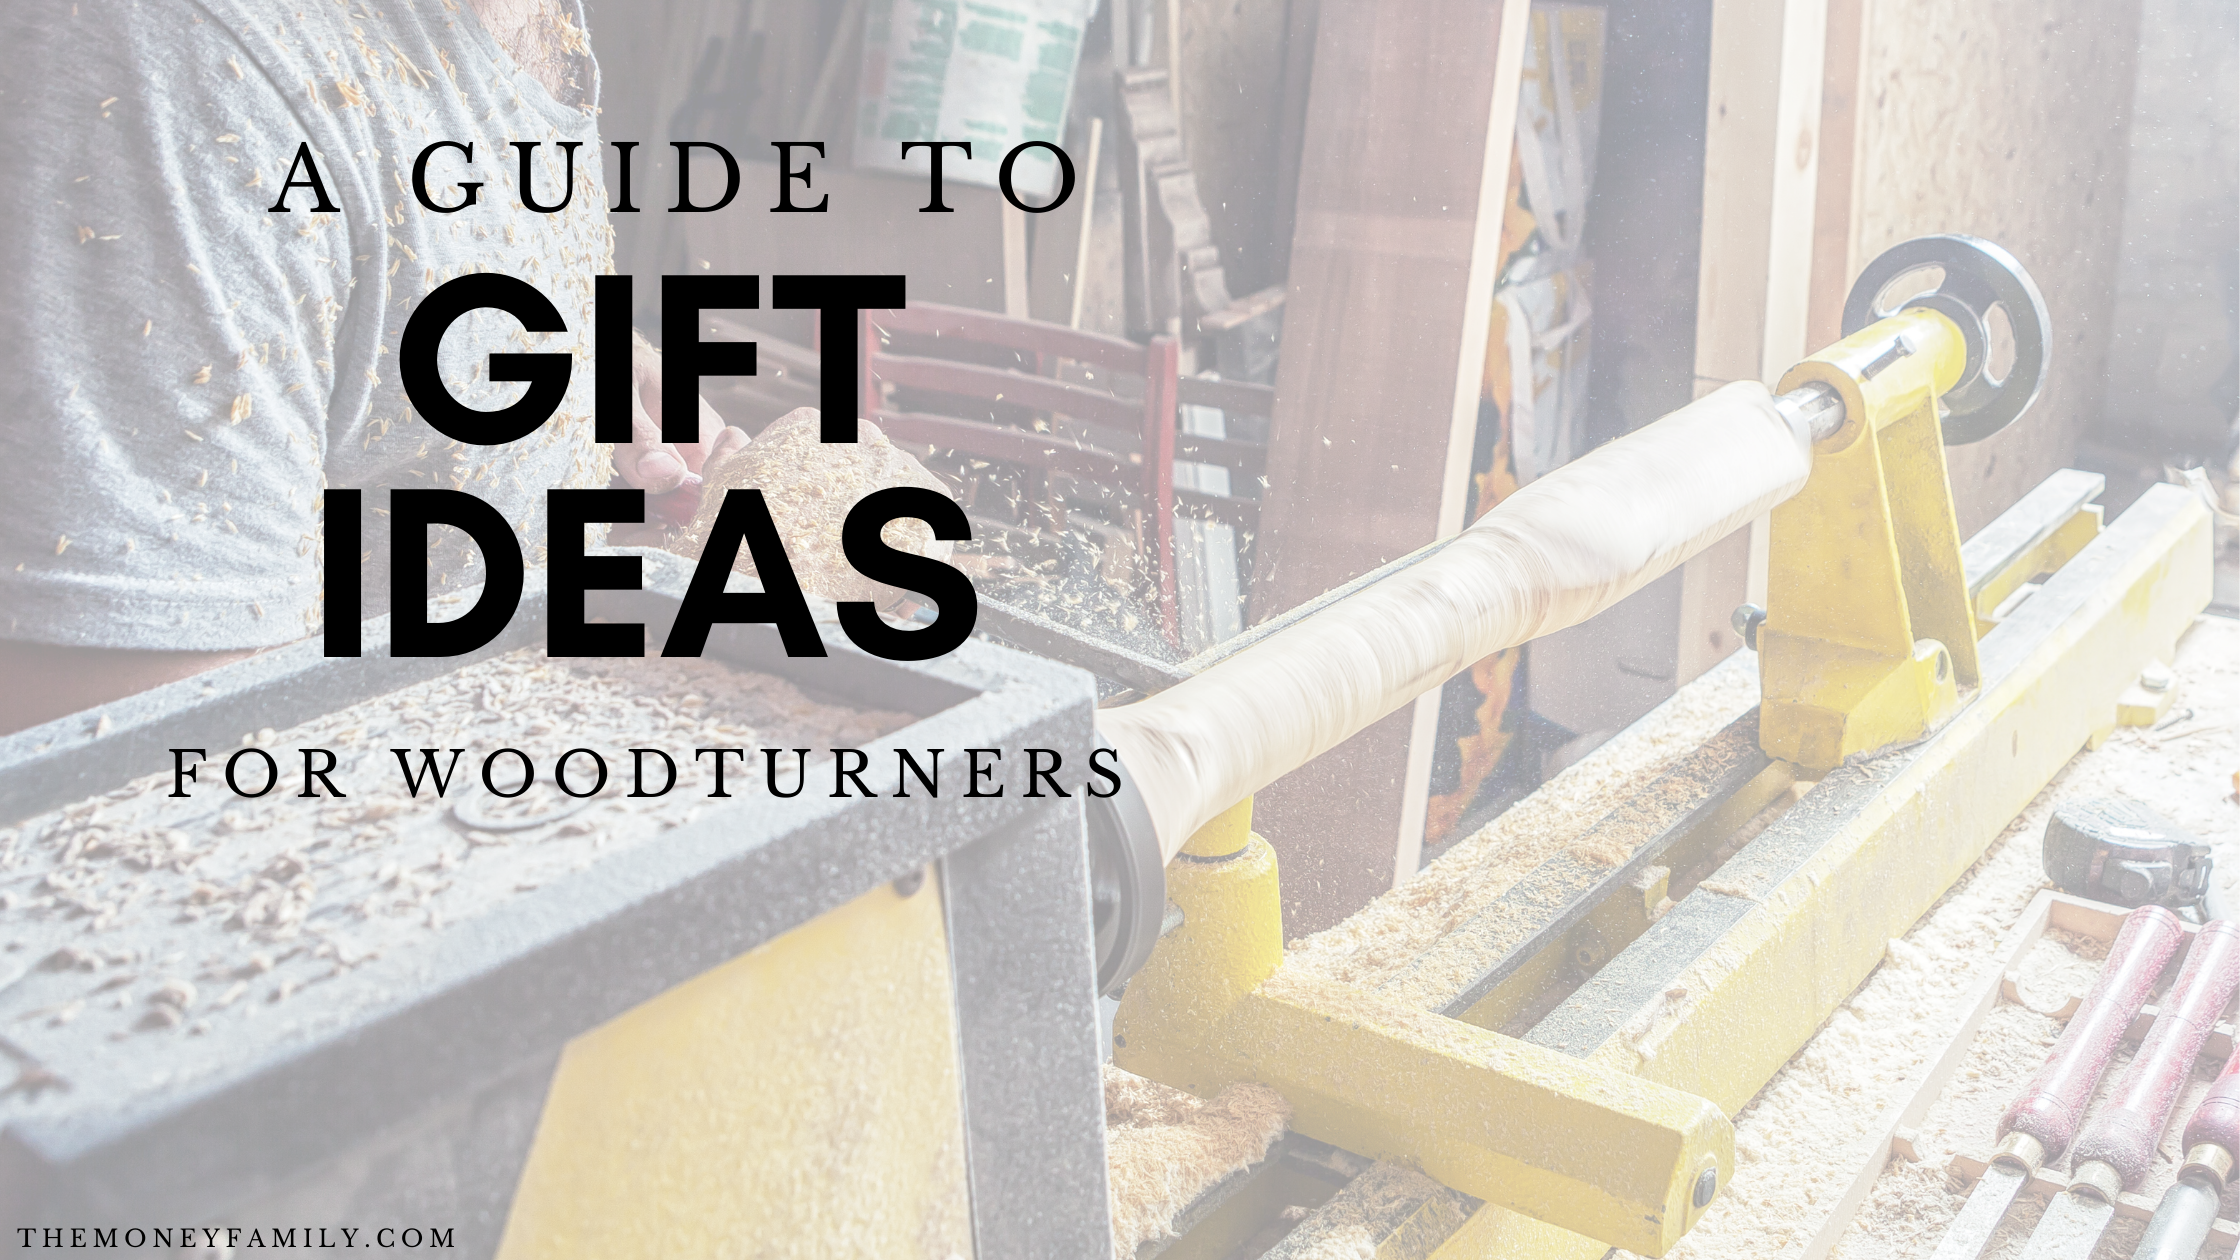 Gifts for Woodturners